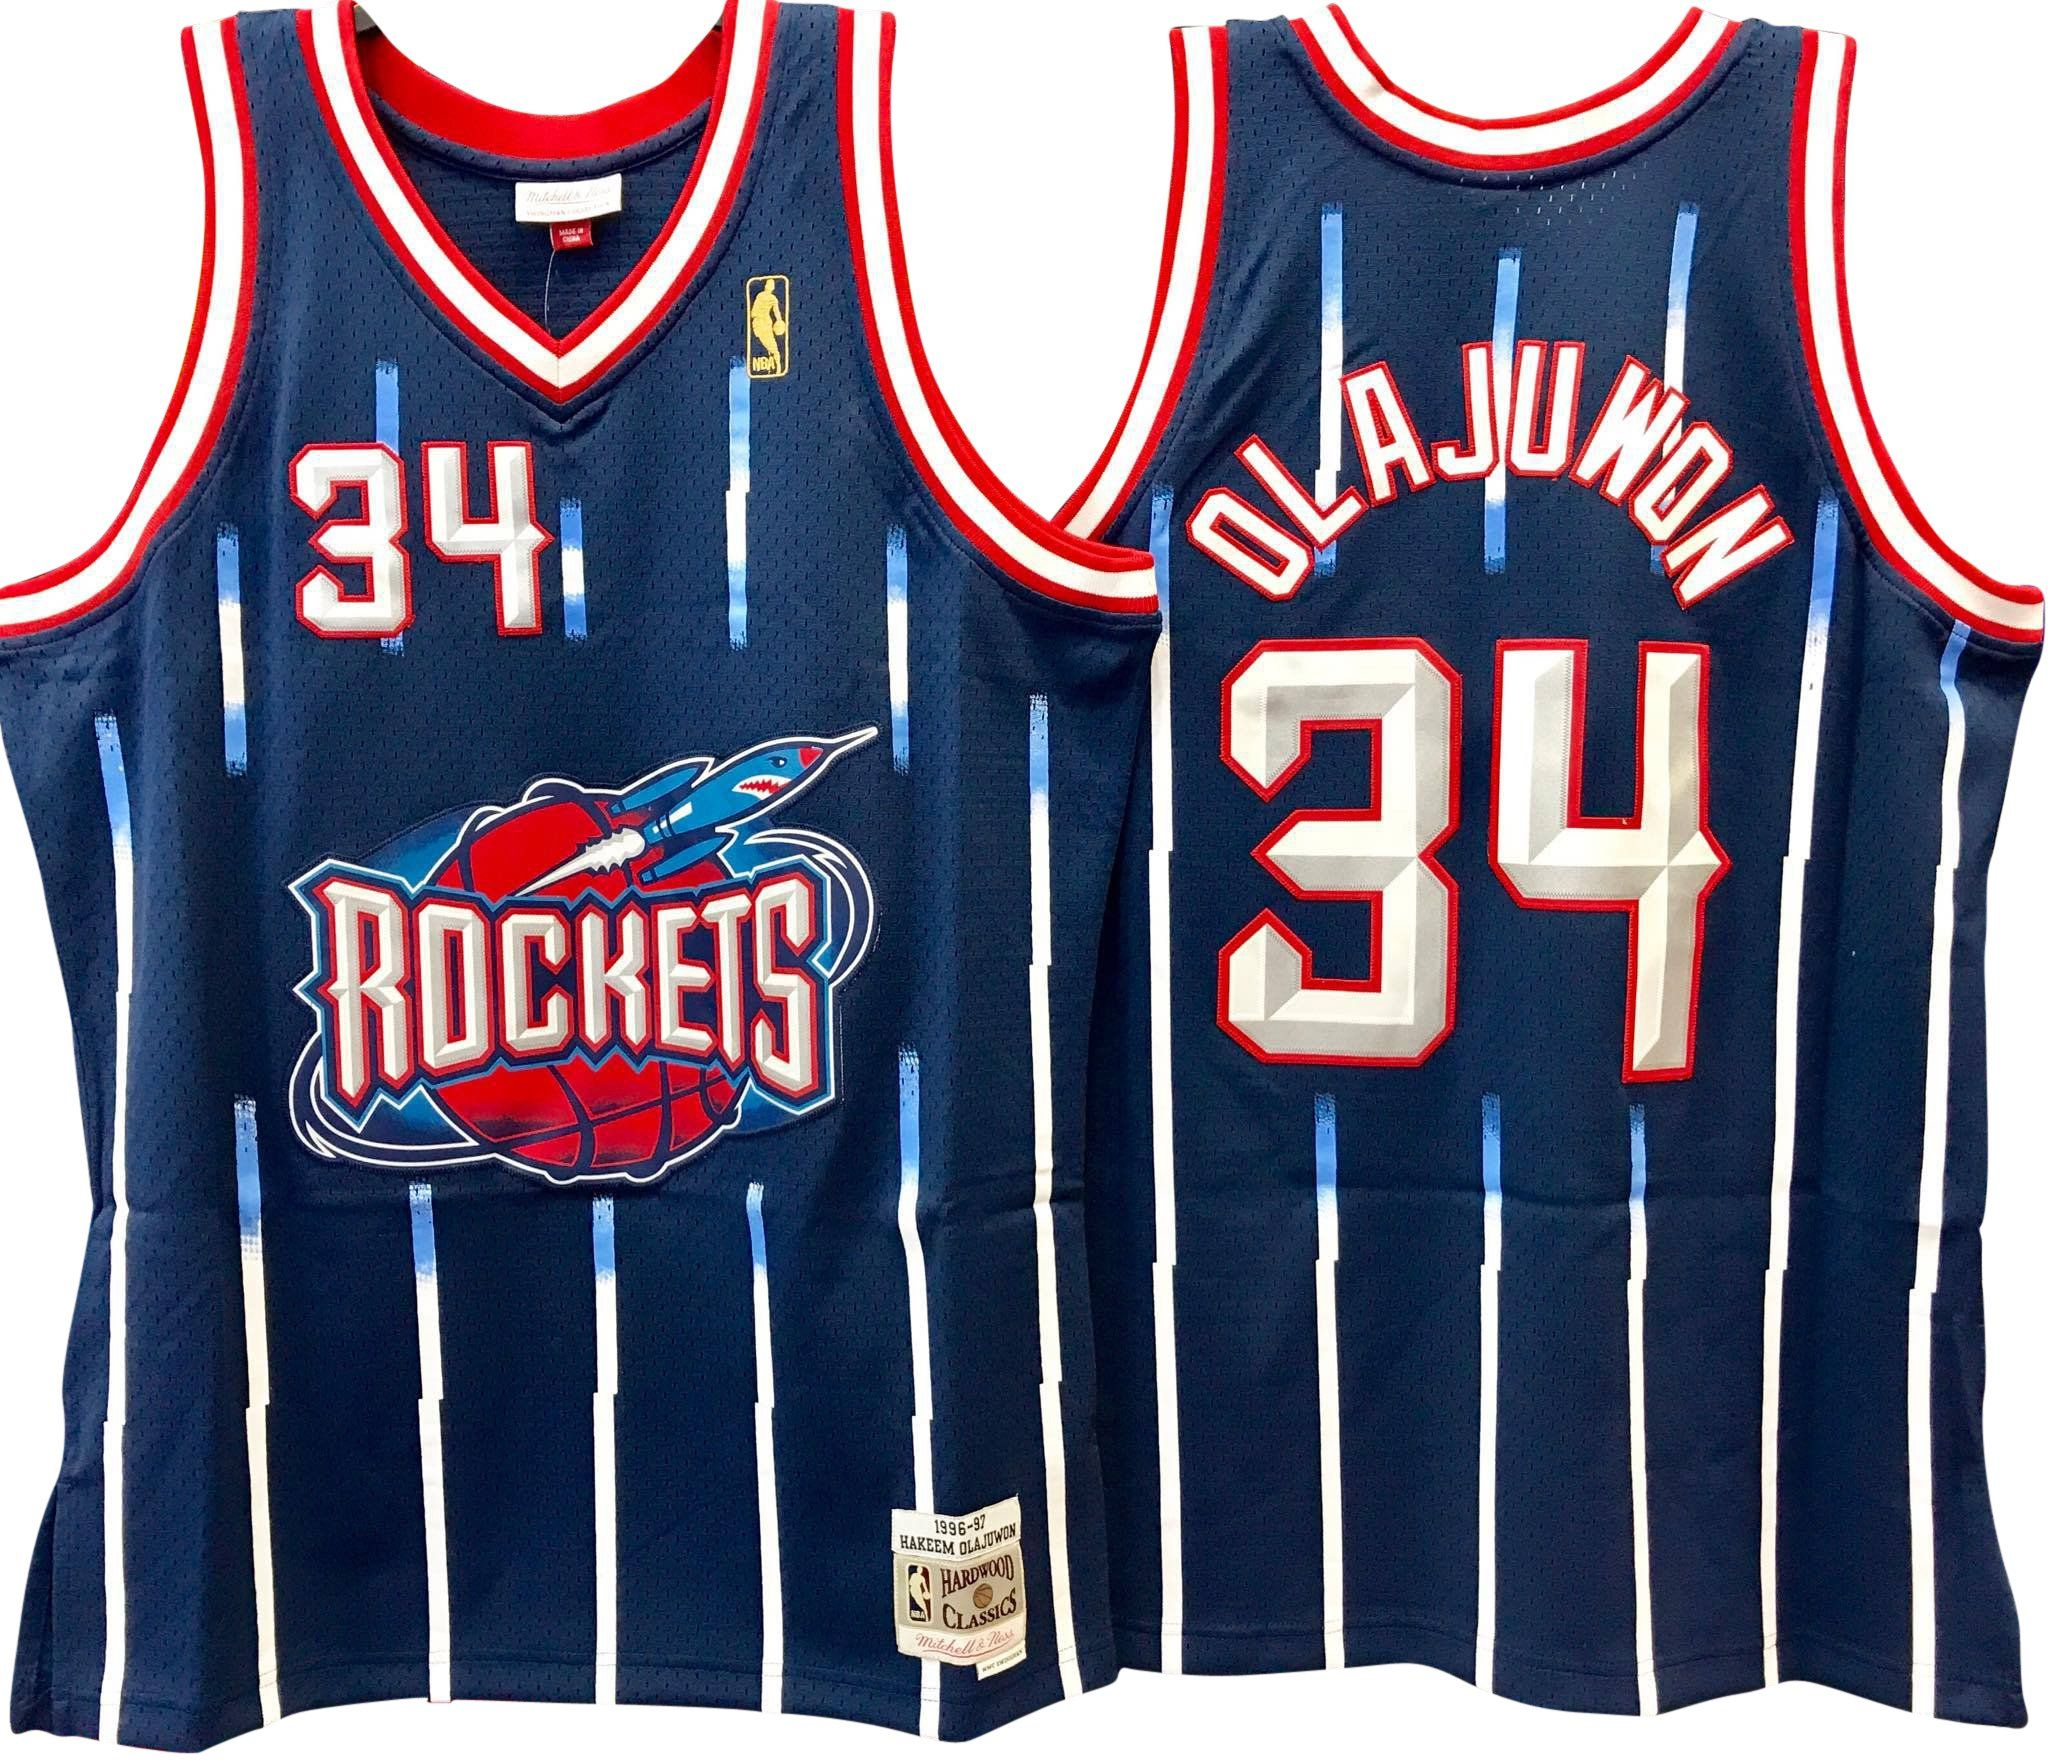 5d6b8ac6c HAKEEM OLAJUWON HOUSTON ROCKETS NBA HARDWOOD CLASSICS THROWBACK NAVY  SWINGMAN JERSEY